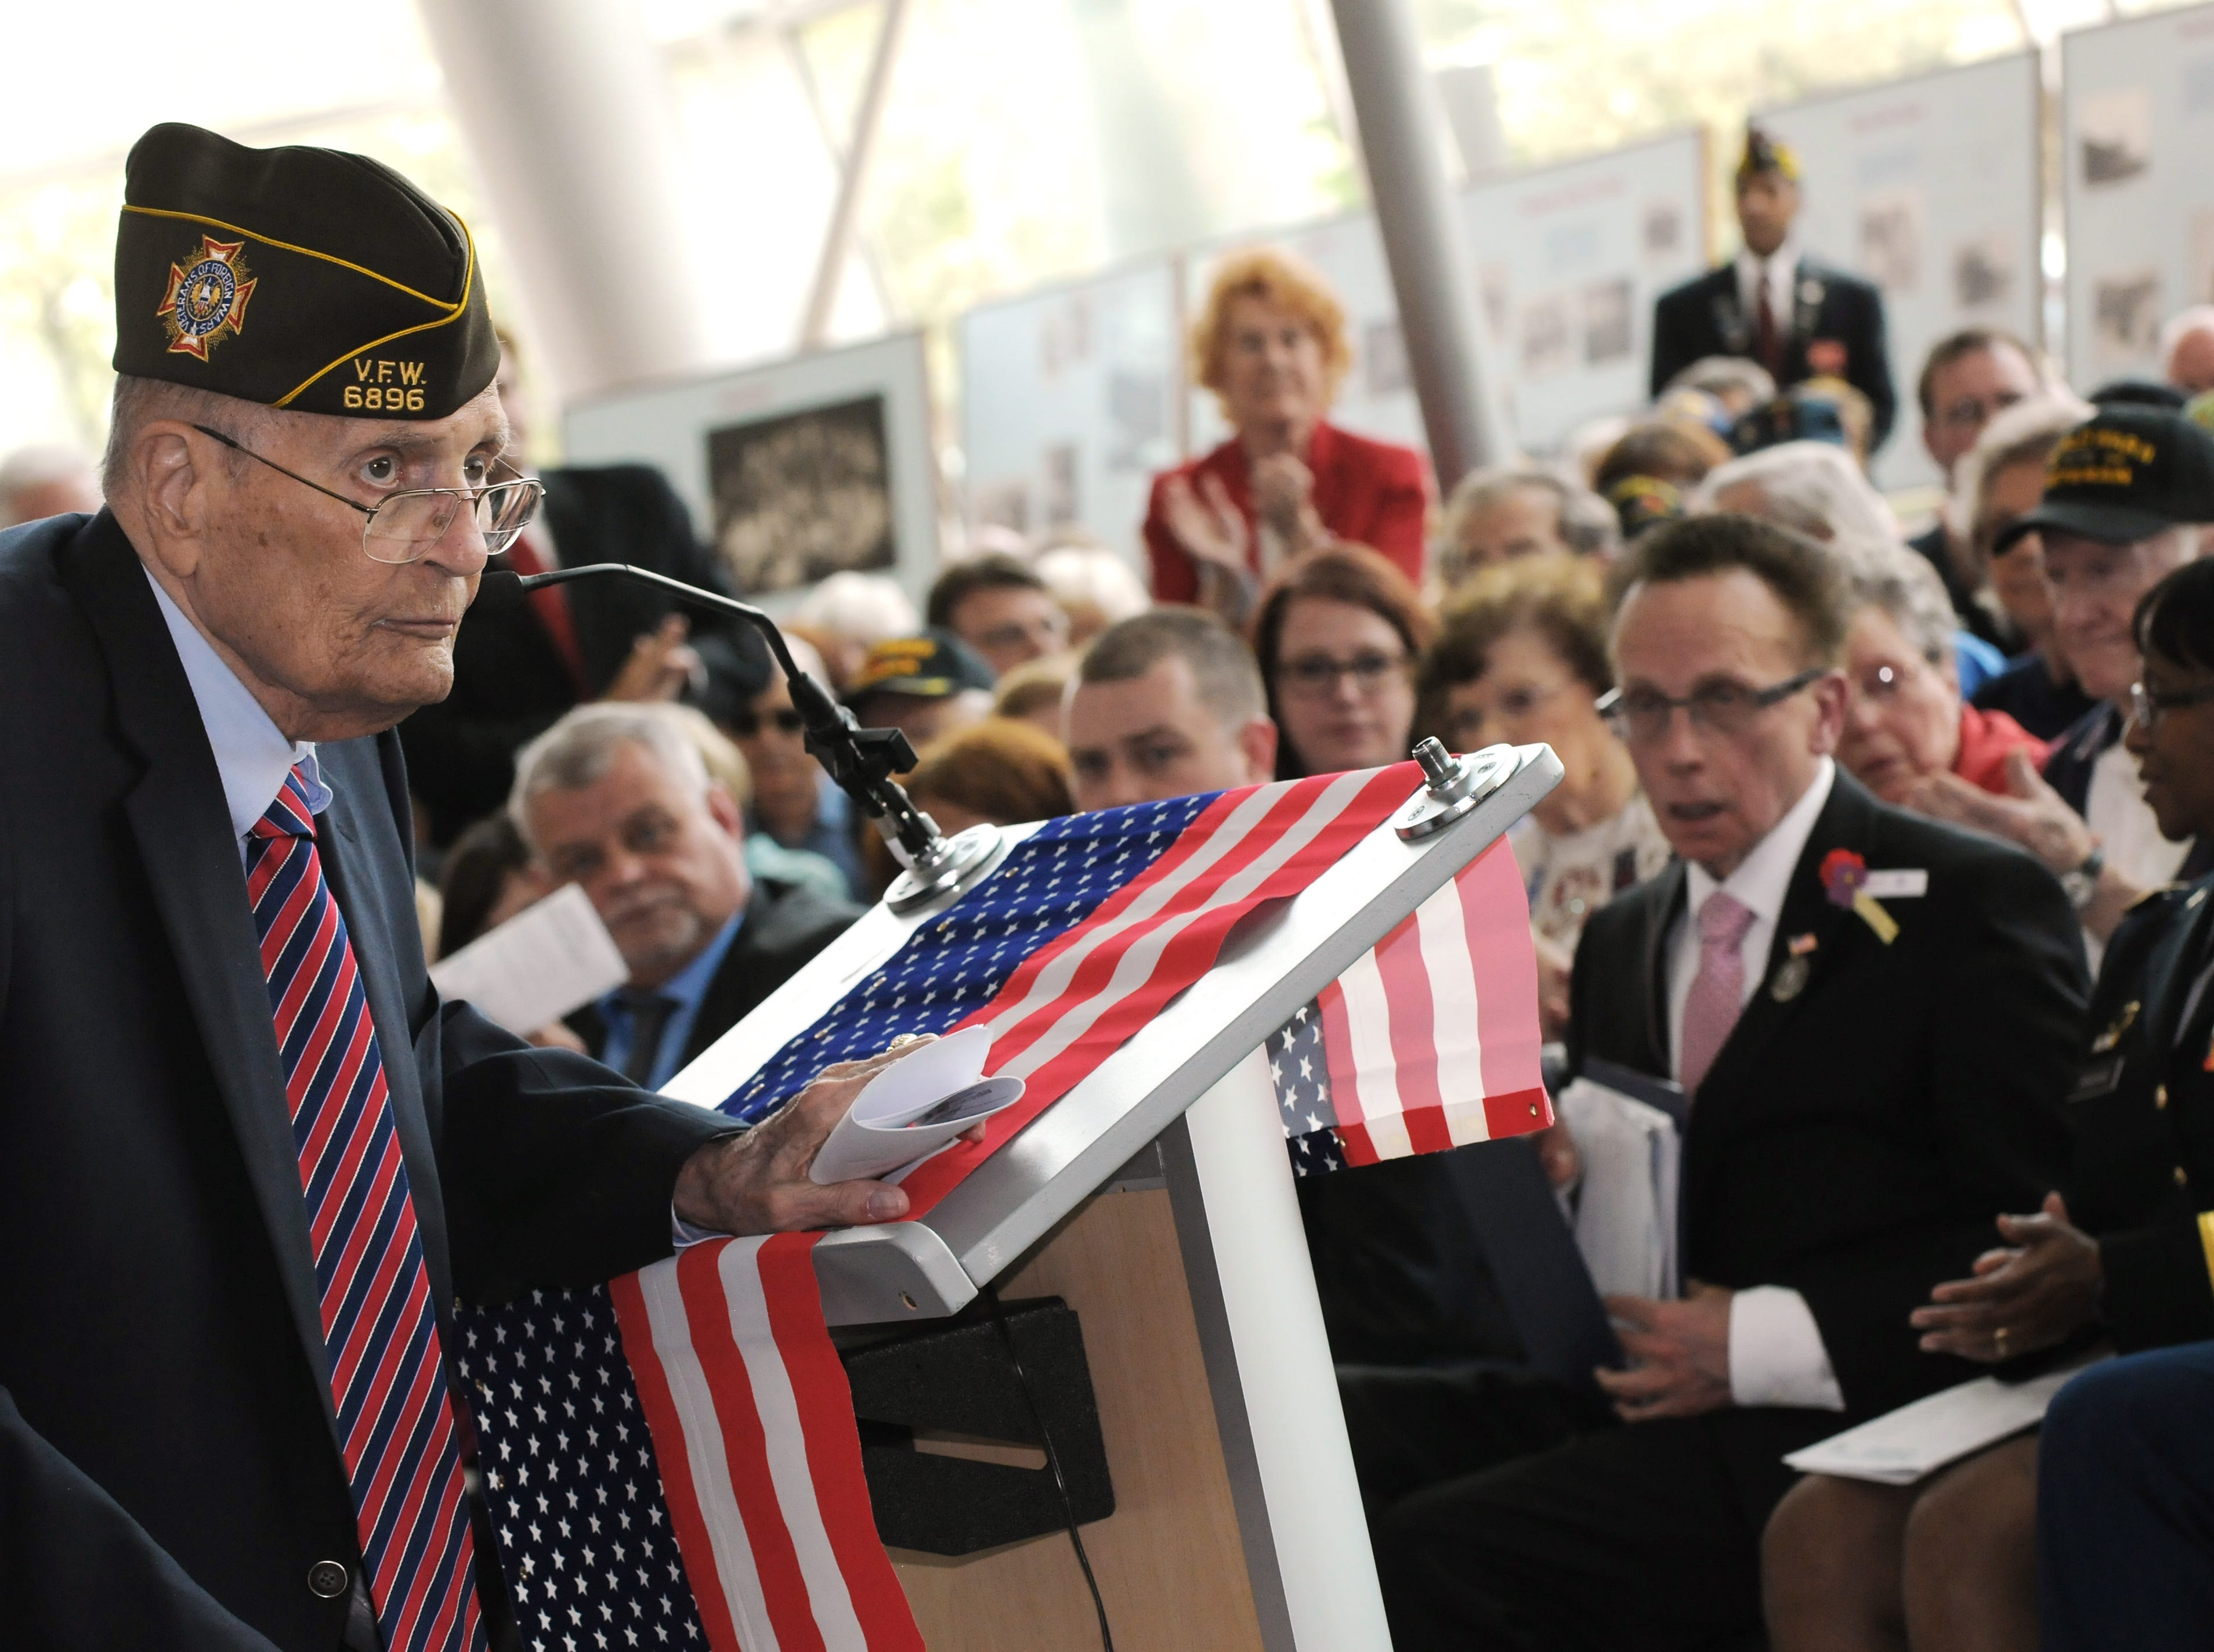 Retired U.S. Rep. John Dingell speaks at  the City of Warren's celebration of the 70th anniversary of the end of WWII at Warren City Hall, May 8, 2015.